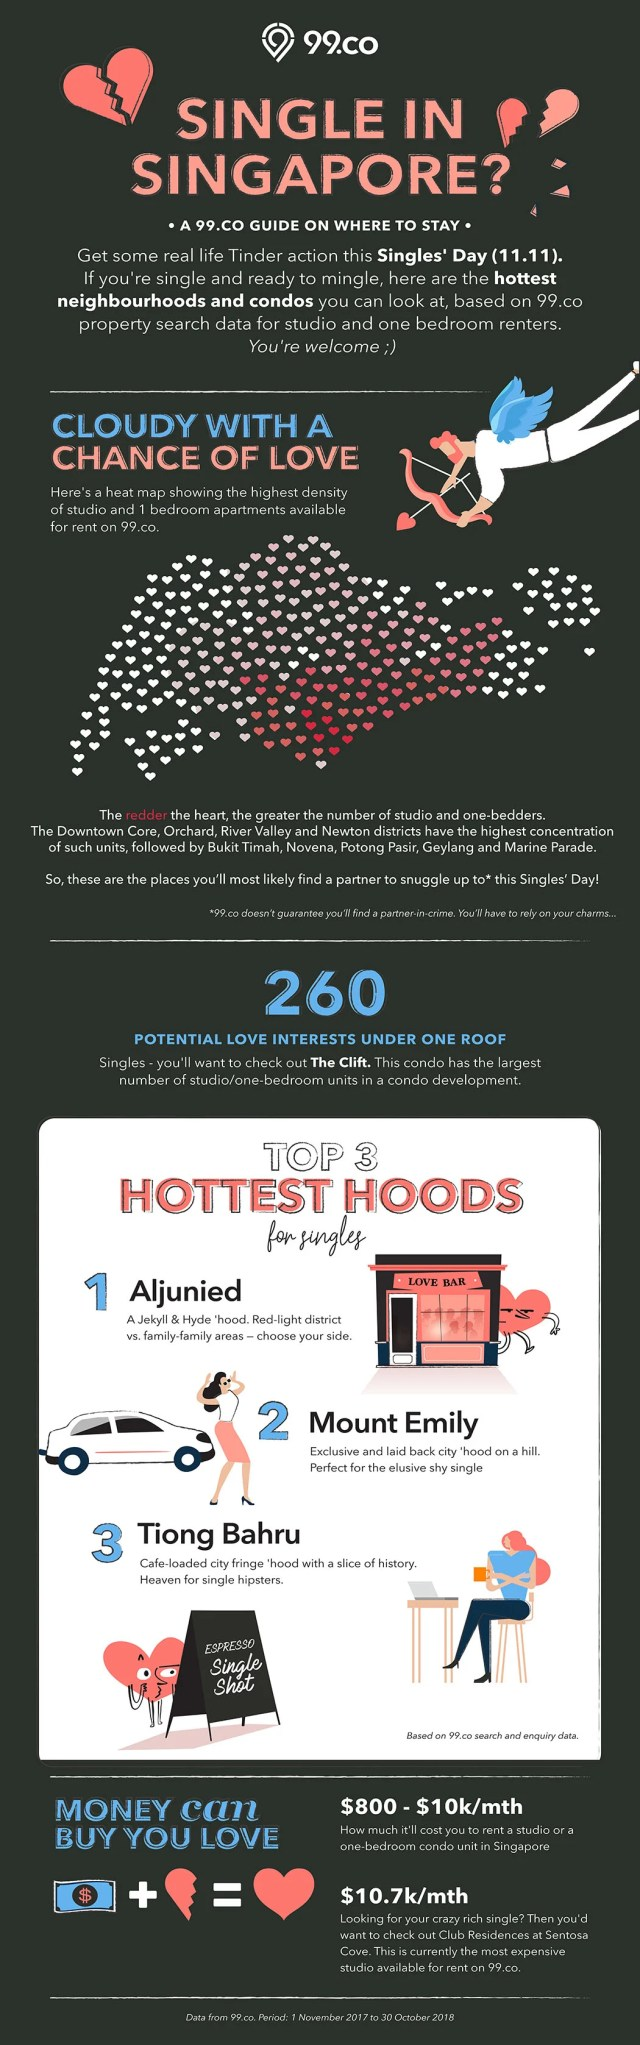 singles-day-infographic